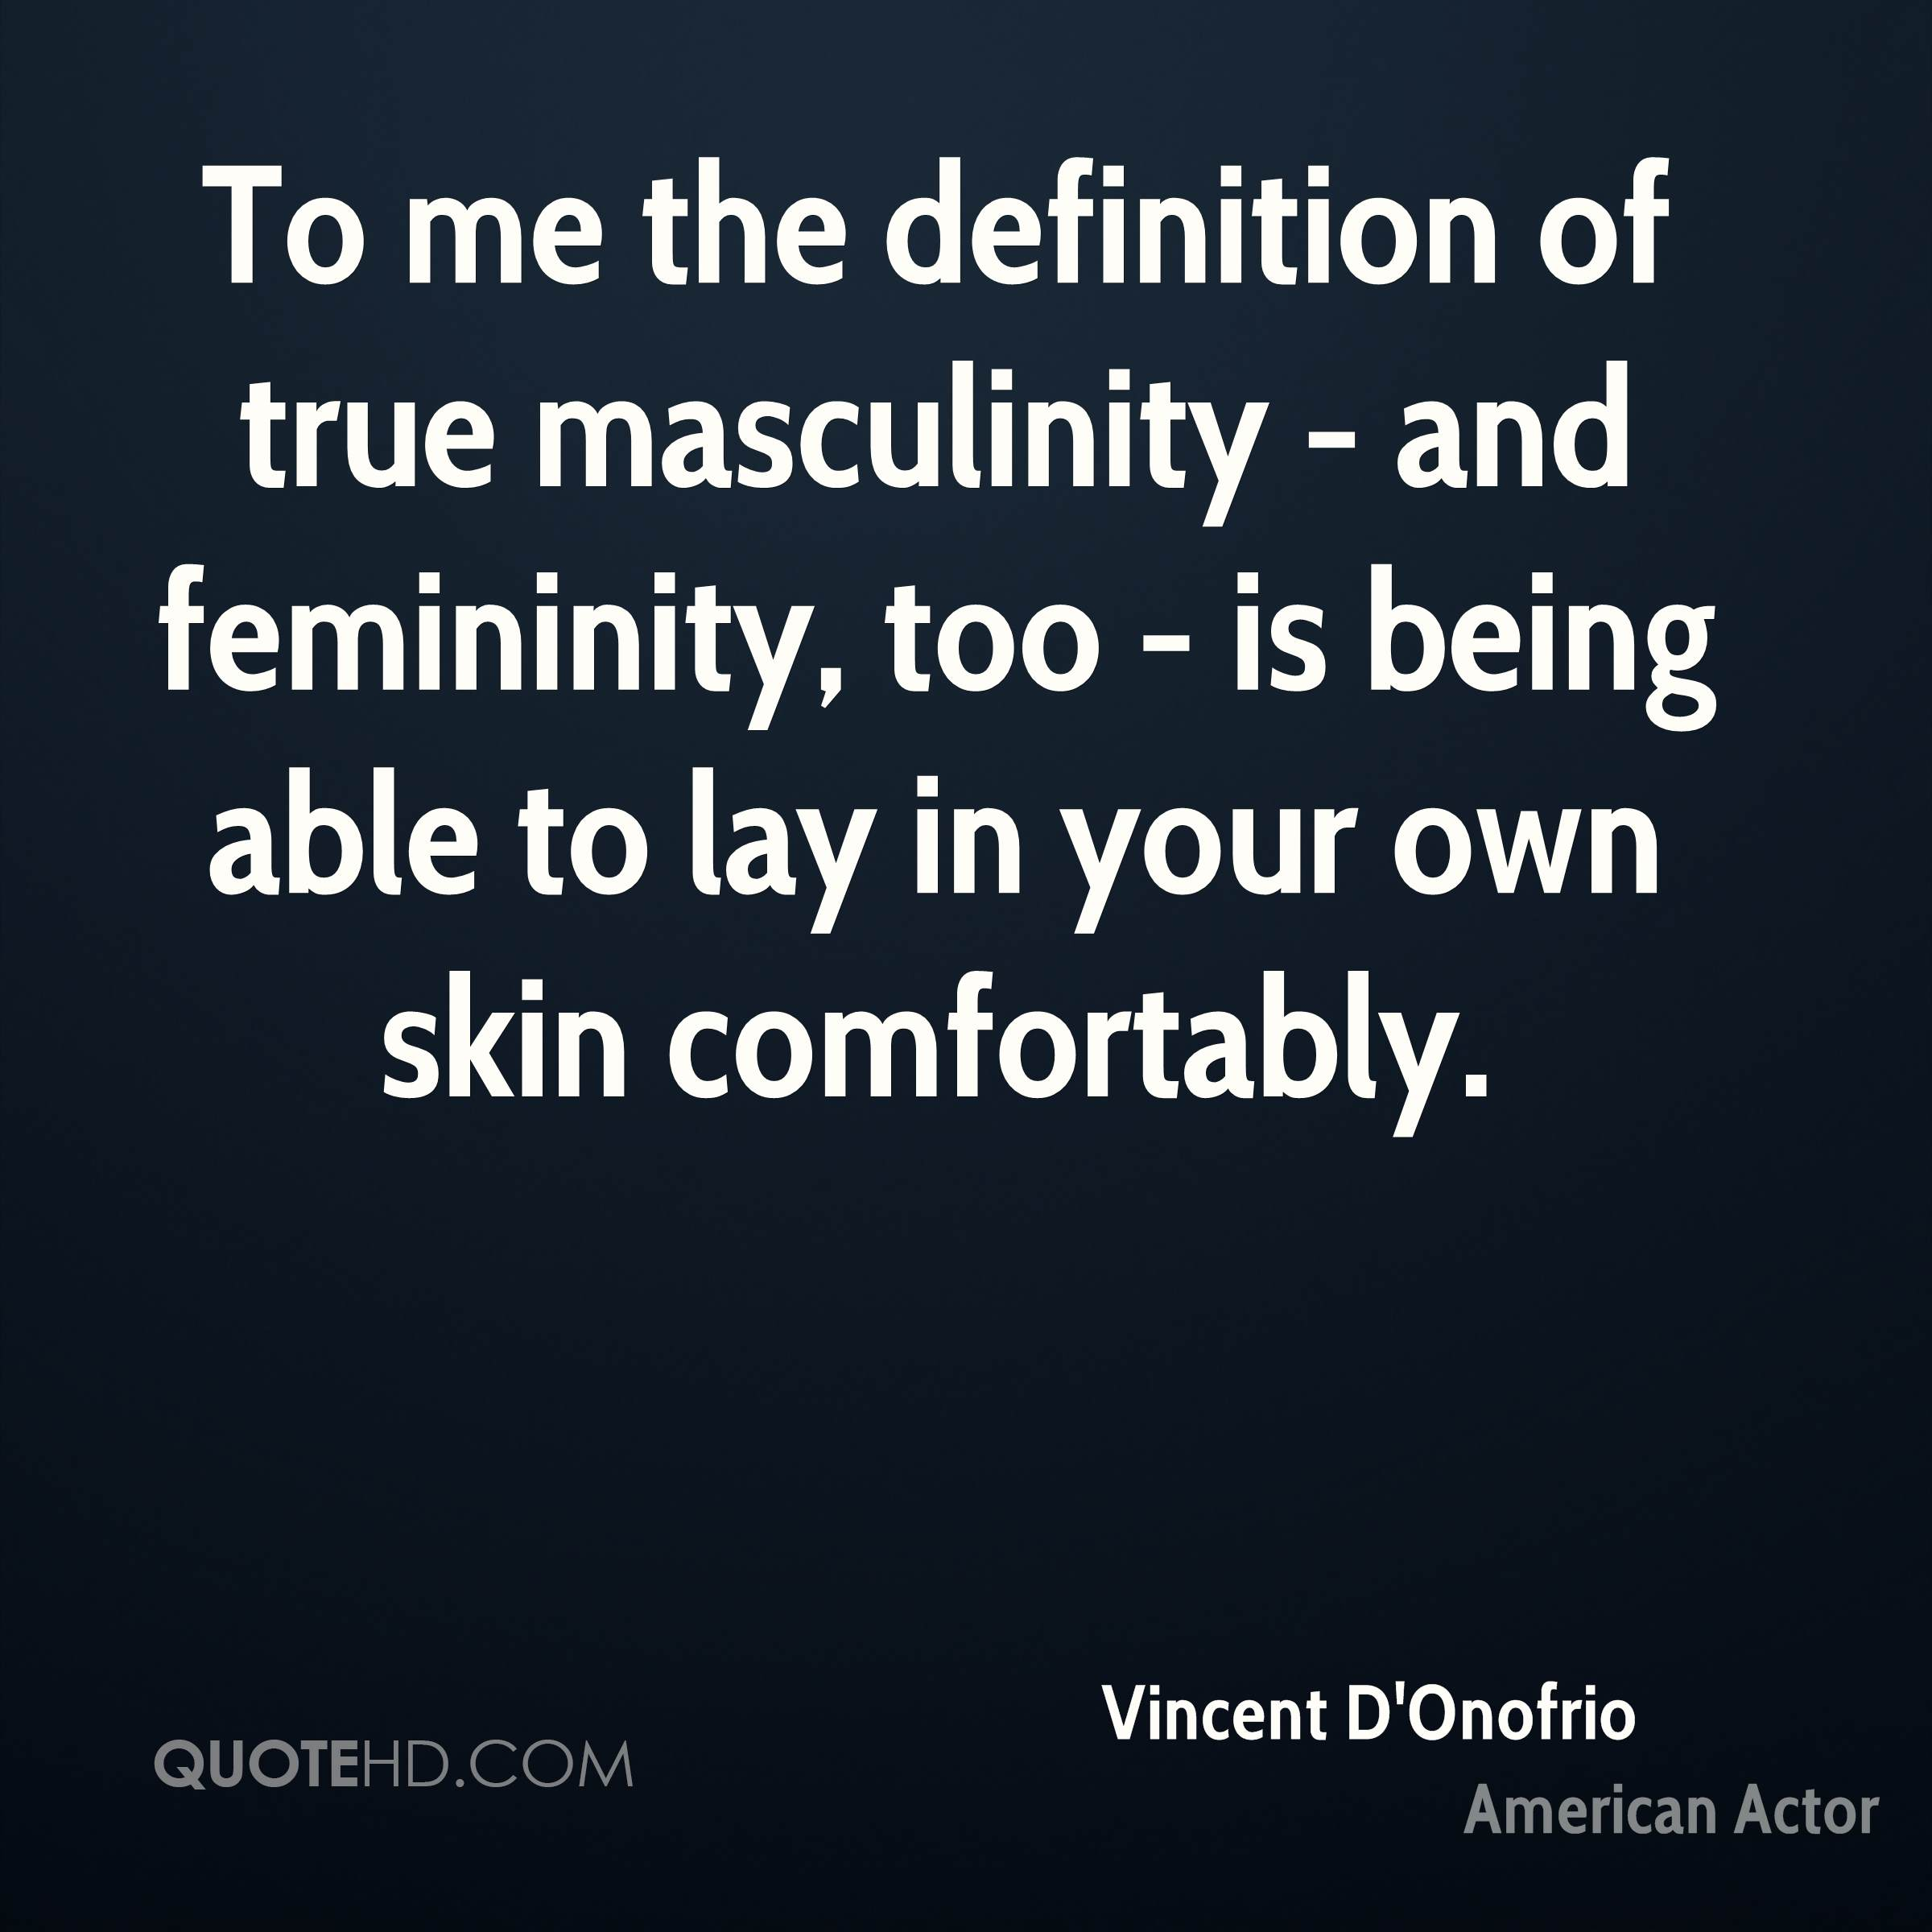 To me the definition of true masculinity - and femininity, too - is being able to lay in your own skin comfortably.